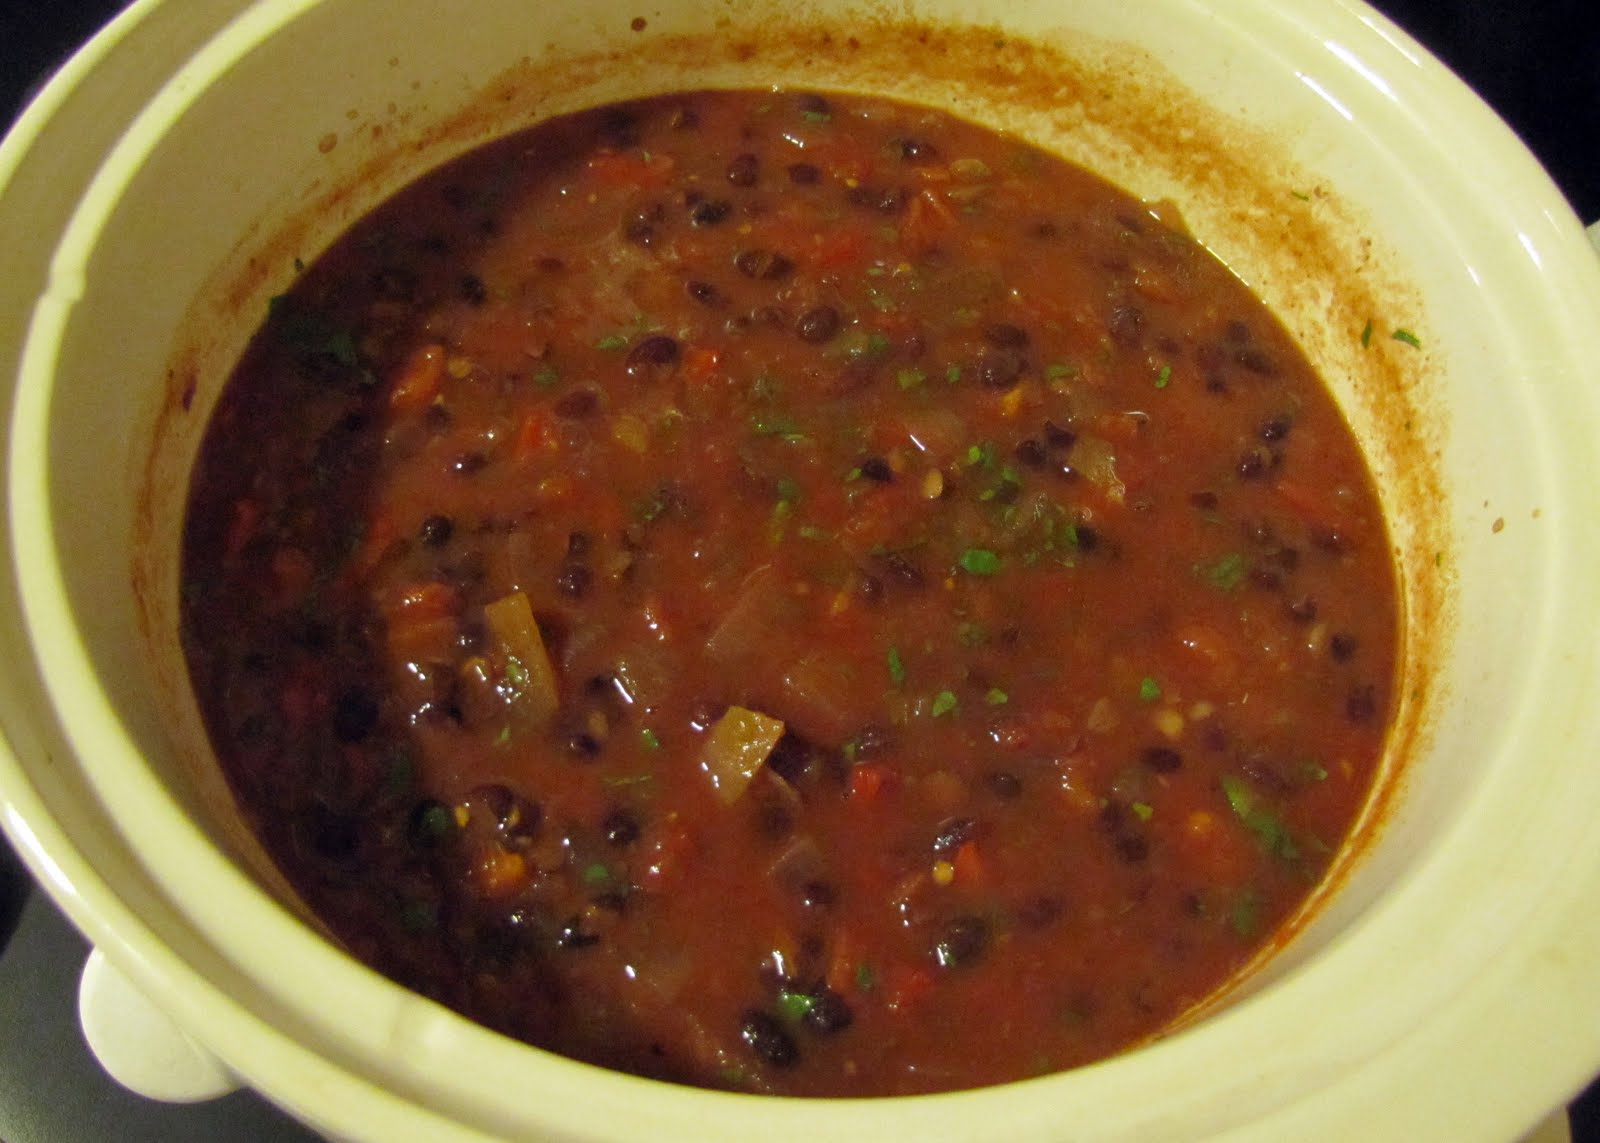 Slow Cooker Black Bean Soup ready for serving straight from the Crock ...